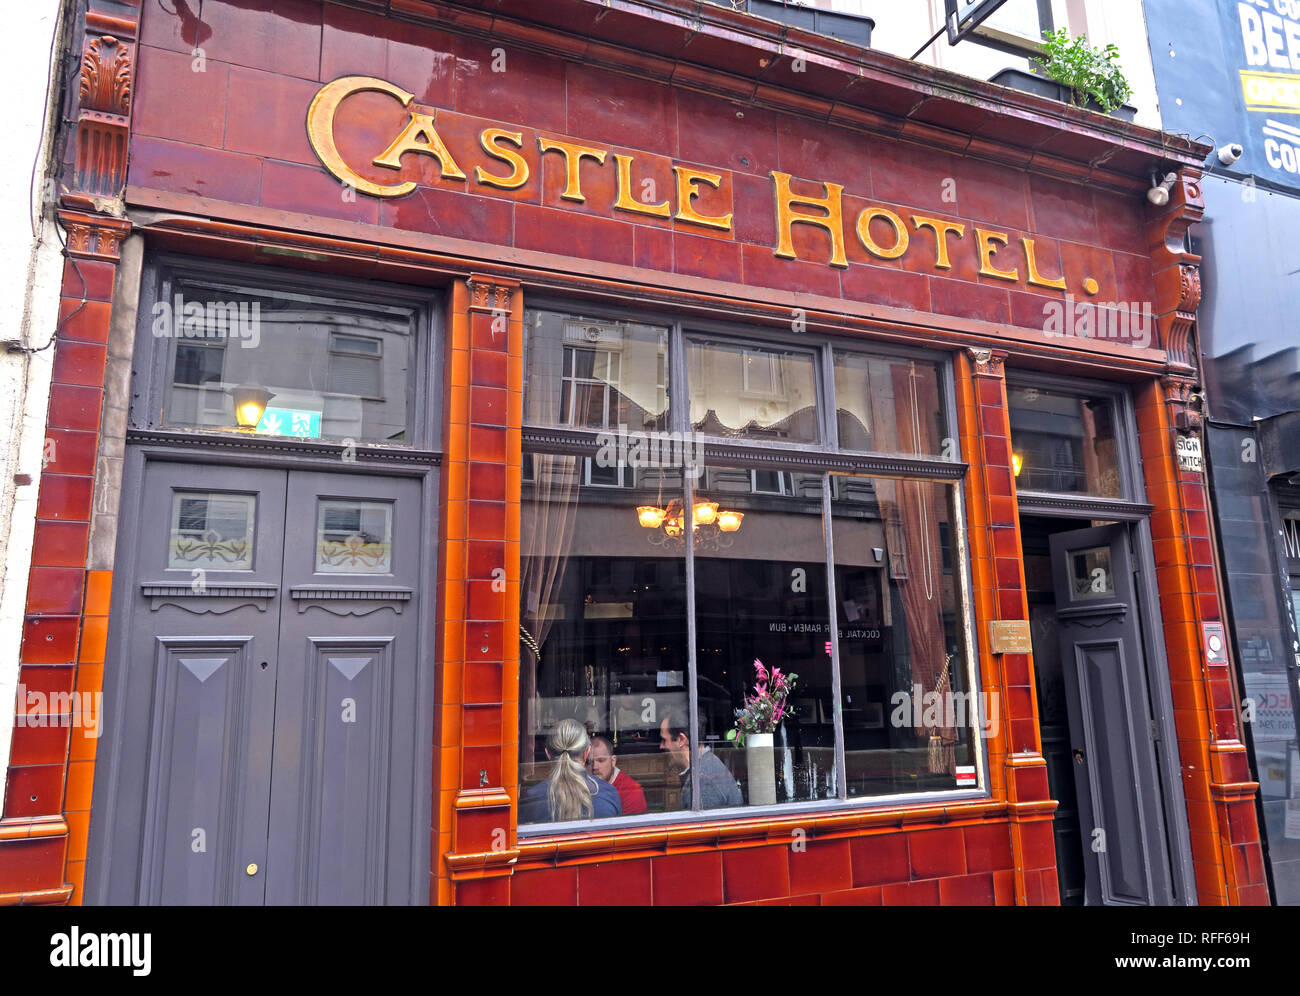 The Castle Hotel, 66 Oldham St, Manchester M4 1LE, Robinsons Brewery ales and beers Stock Photo